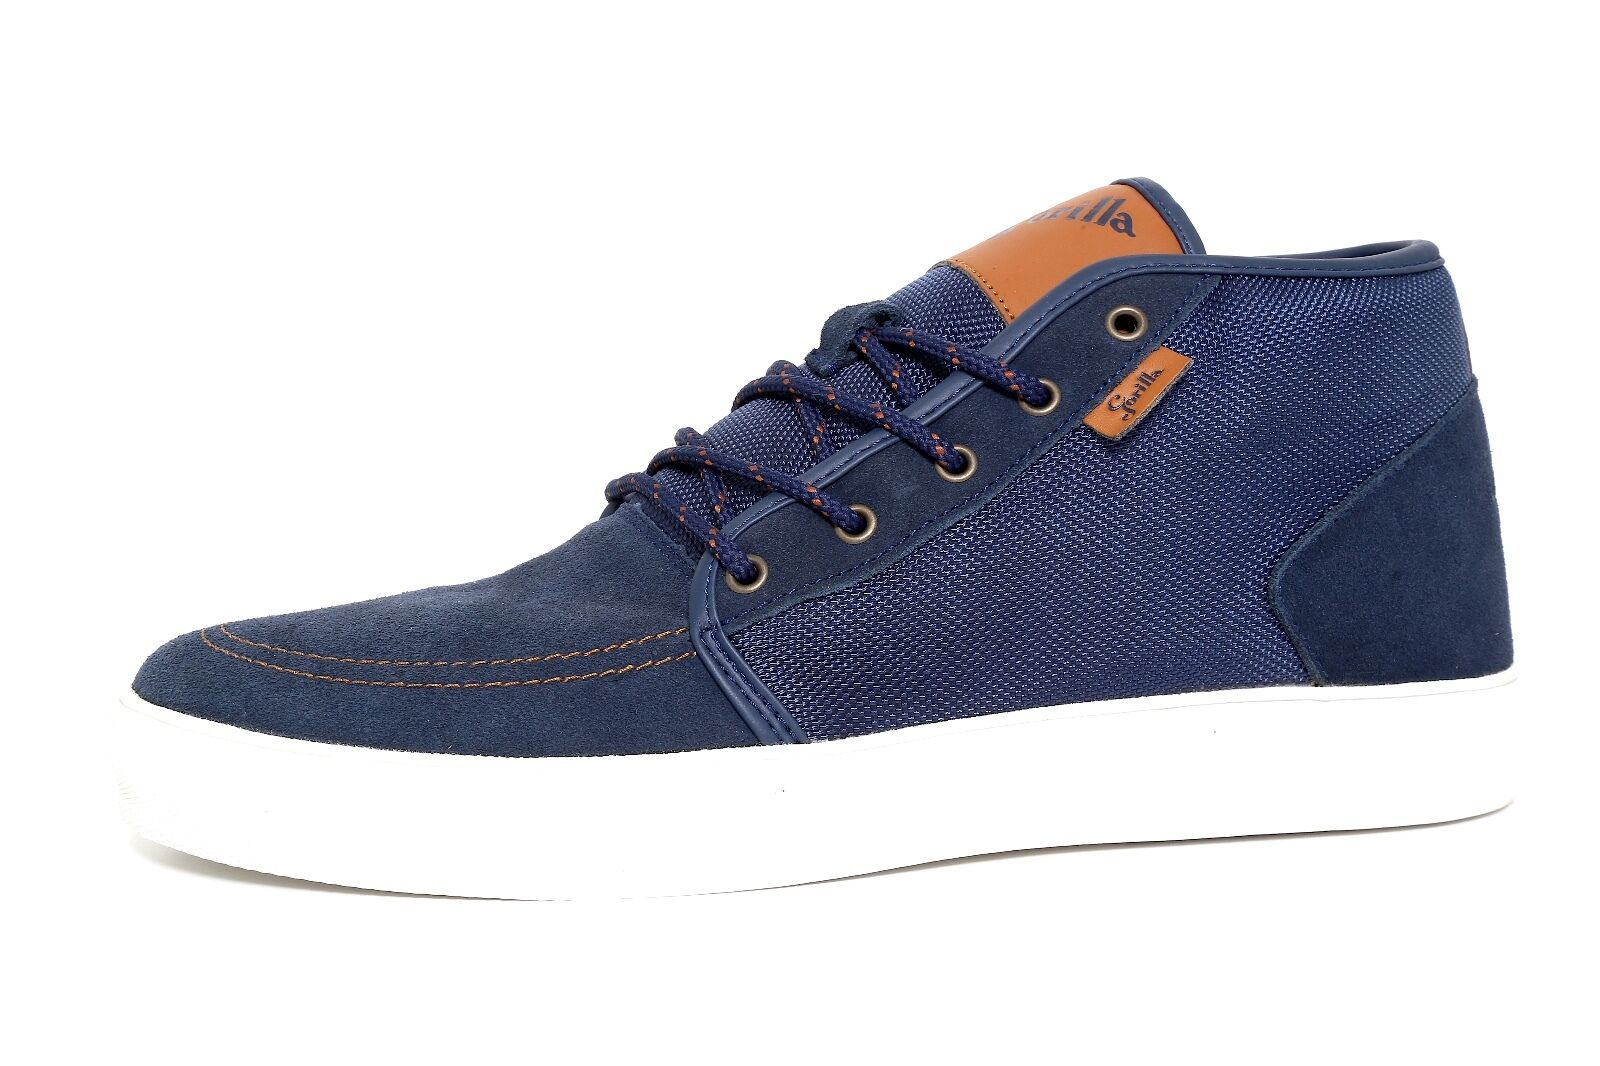 Gorilla bluee Textile Men Lace Up High Top Sneakers Size 12 1113